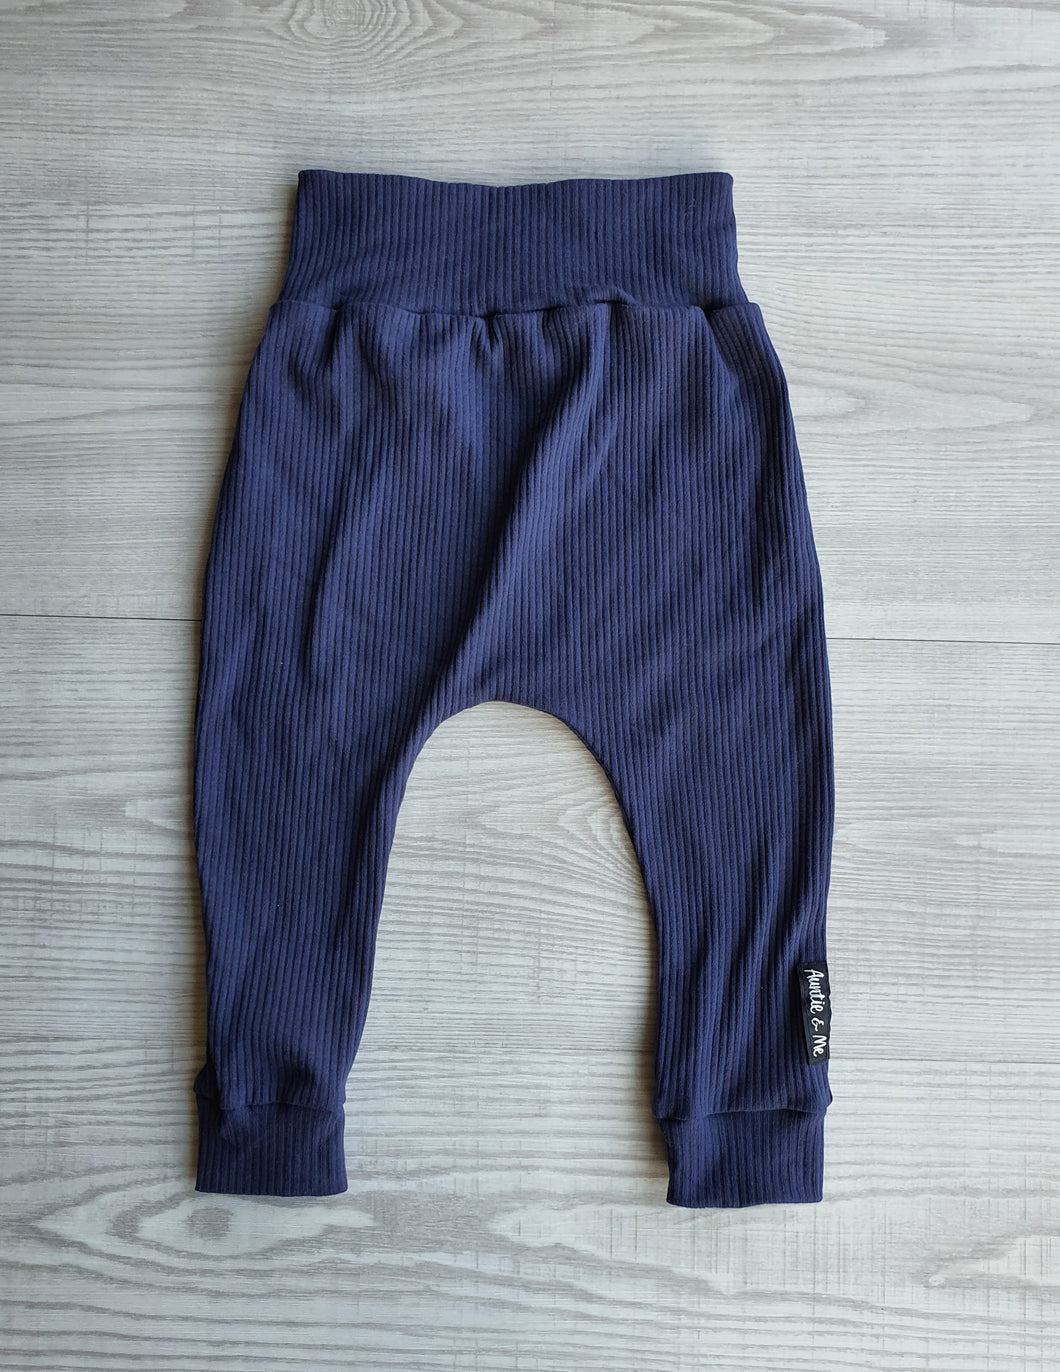 Harem Pants - Navy Rib